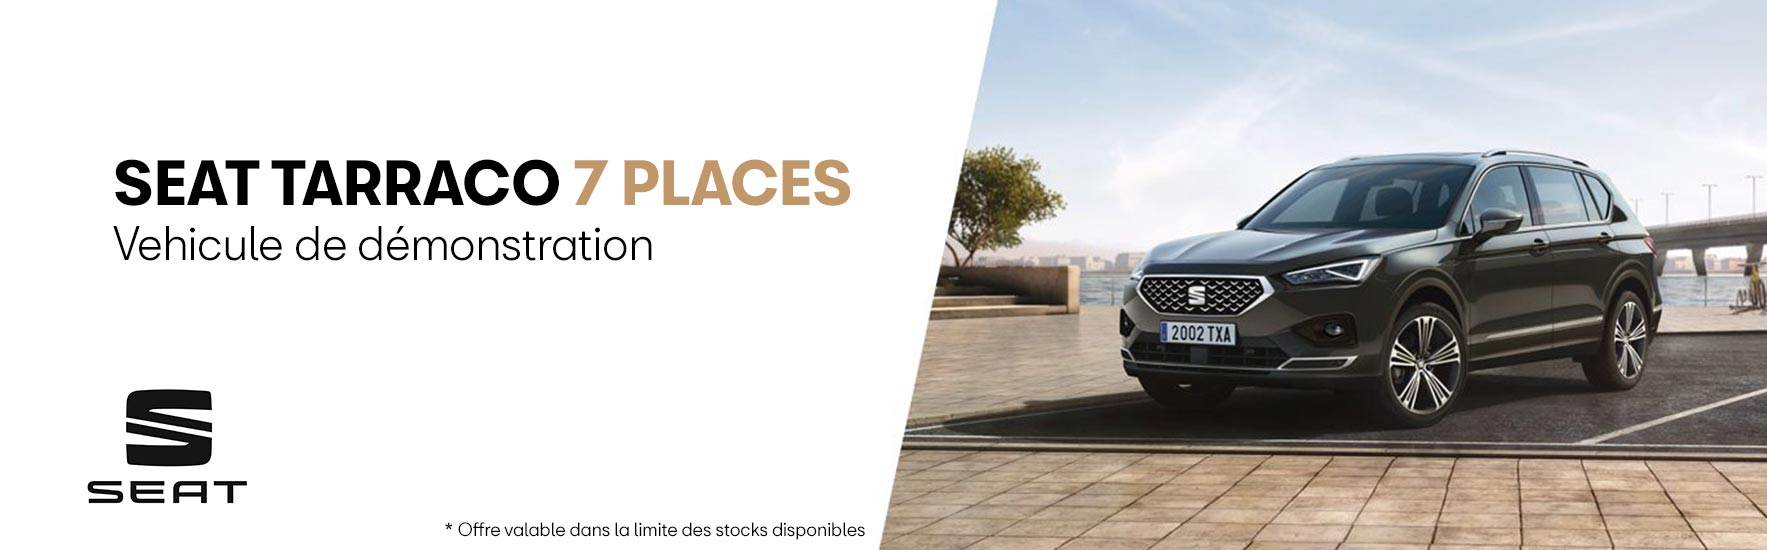 seat_tarraco_angers